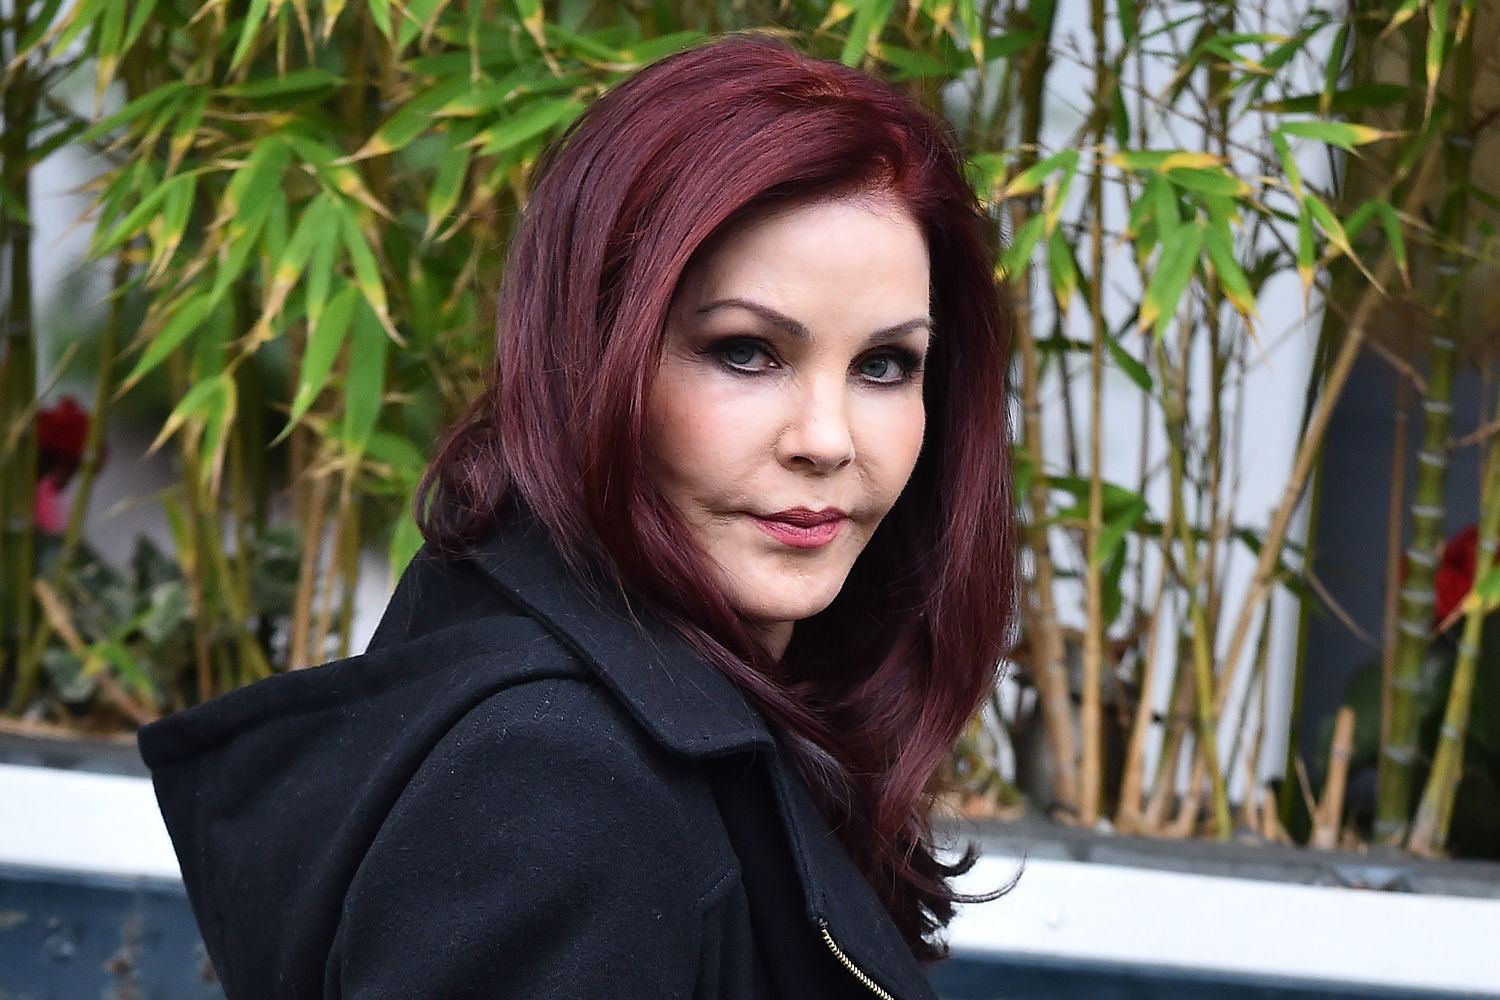 Priscilla Presley On A Liquid Diet Due To Botched Plastic